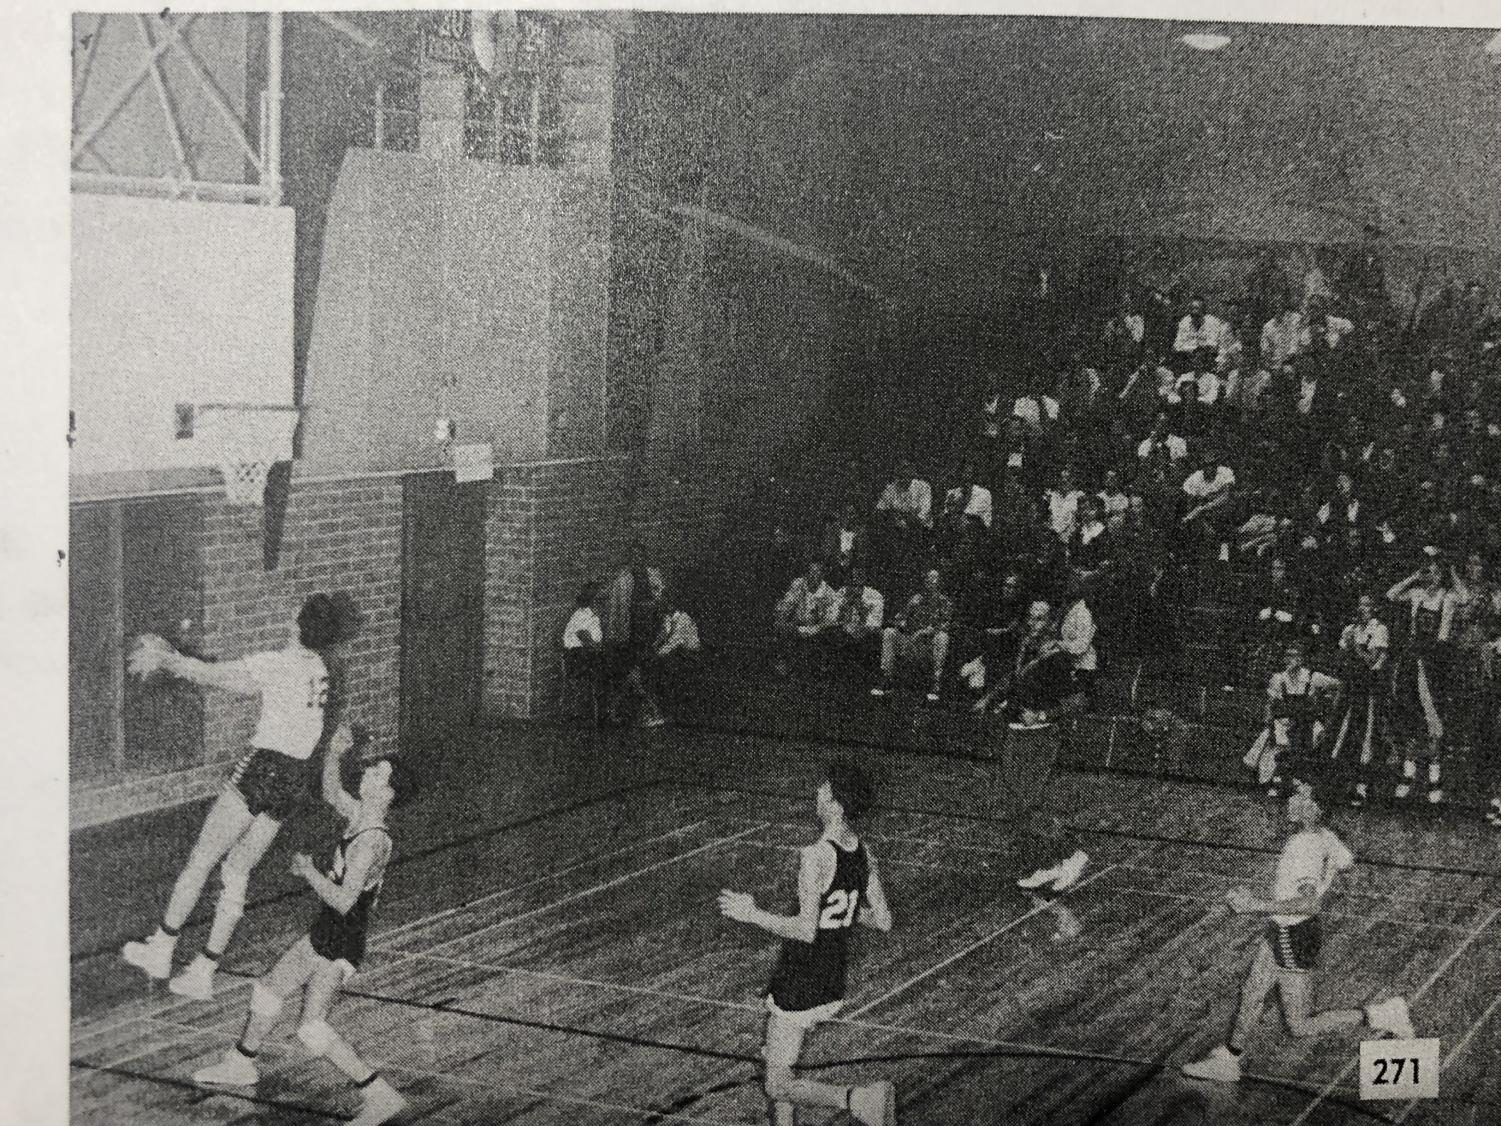 Jay Arnette scored two points against rival Austin High. File photo from 1956 Knight.